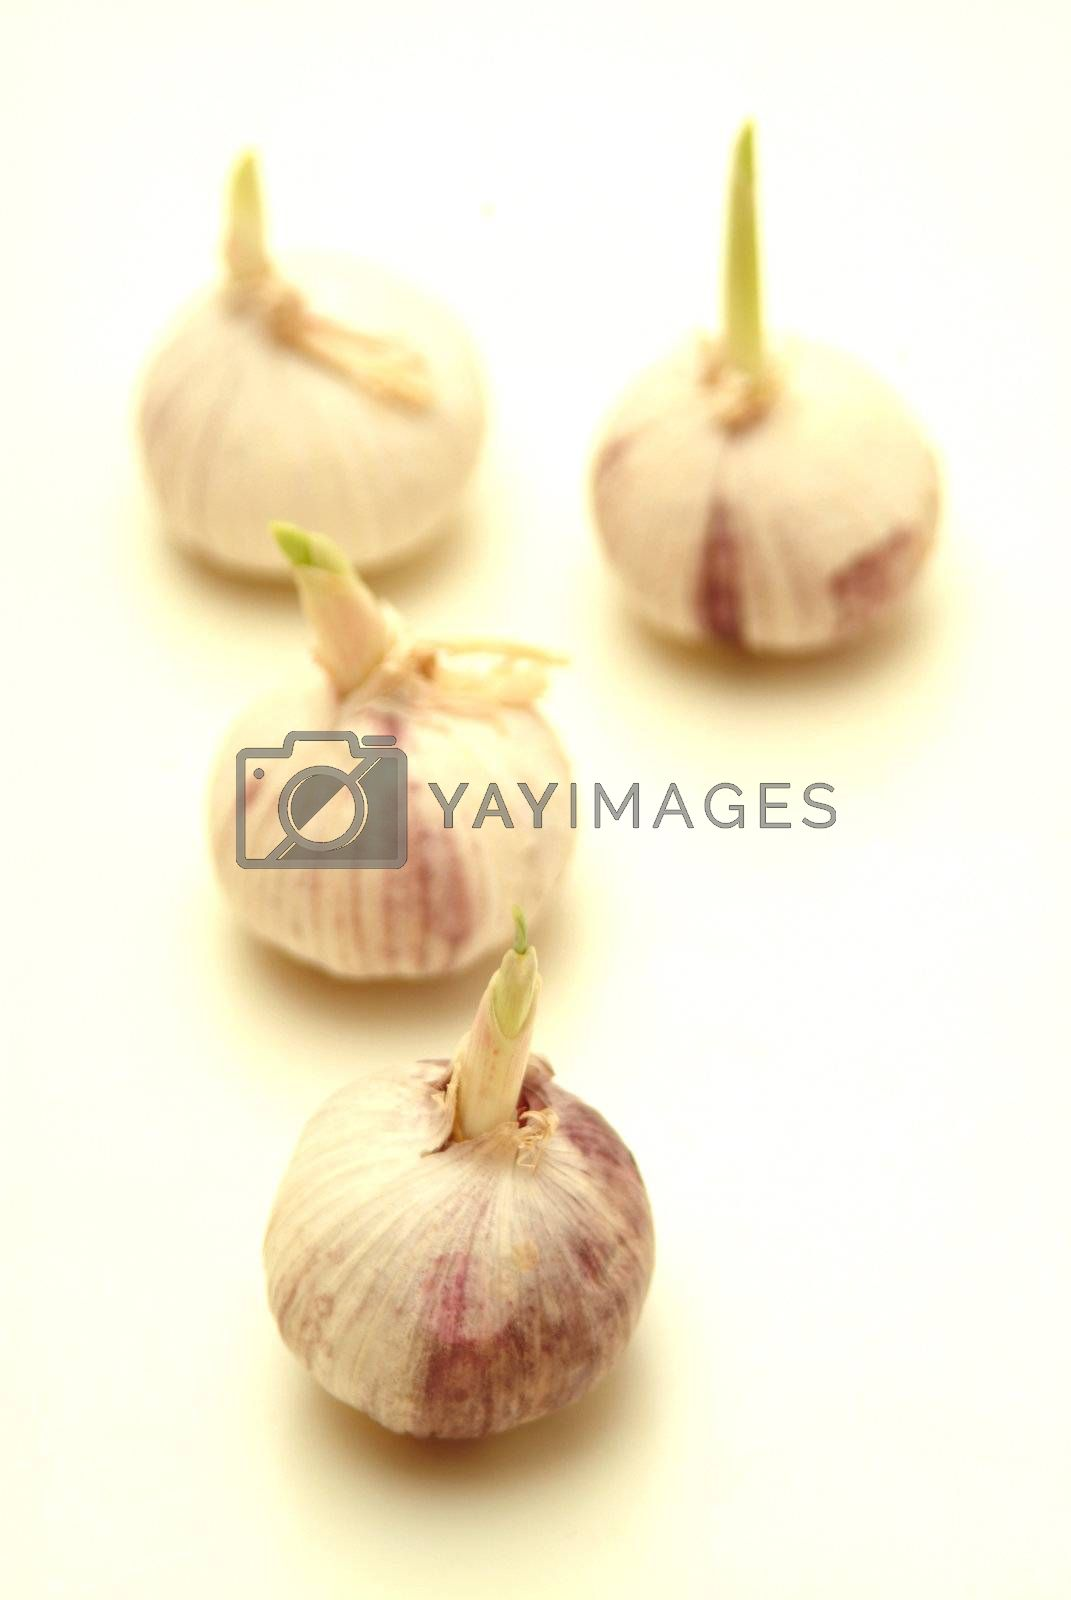 Royalty free image of some garlic on a bright background  by Szakaly